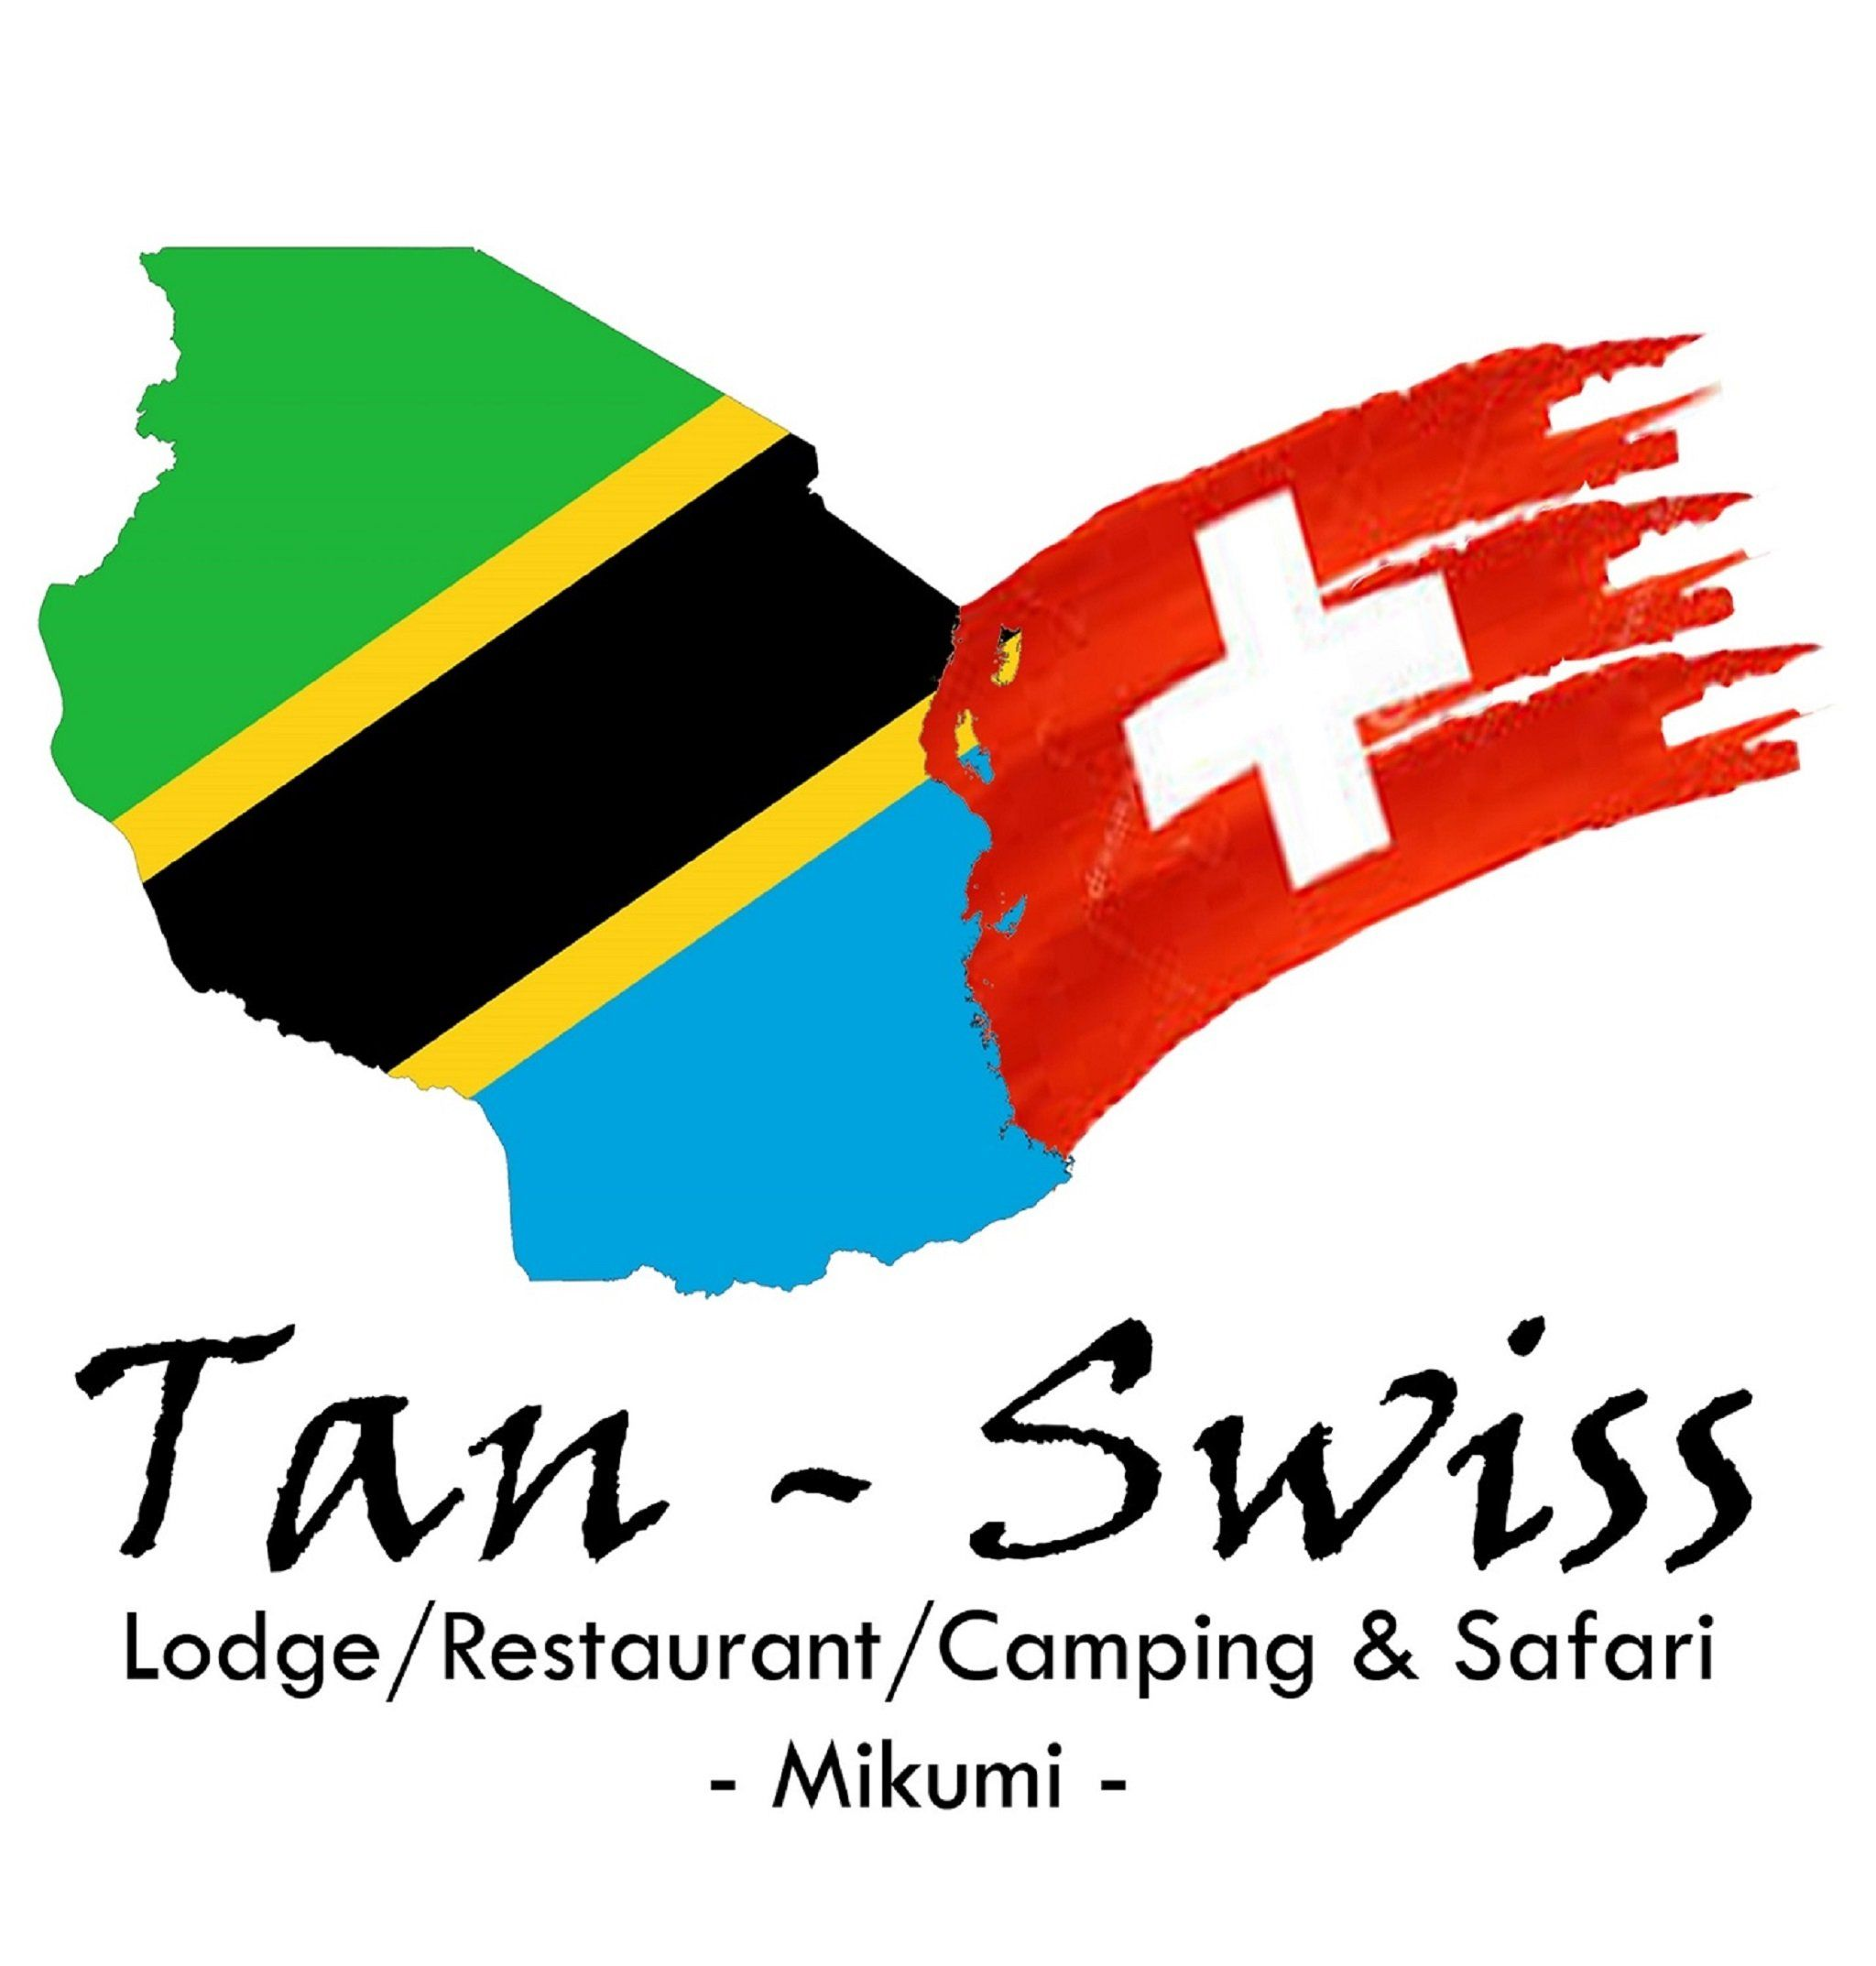 Tan-Swiss Lodge